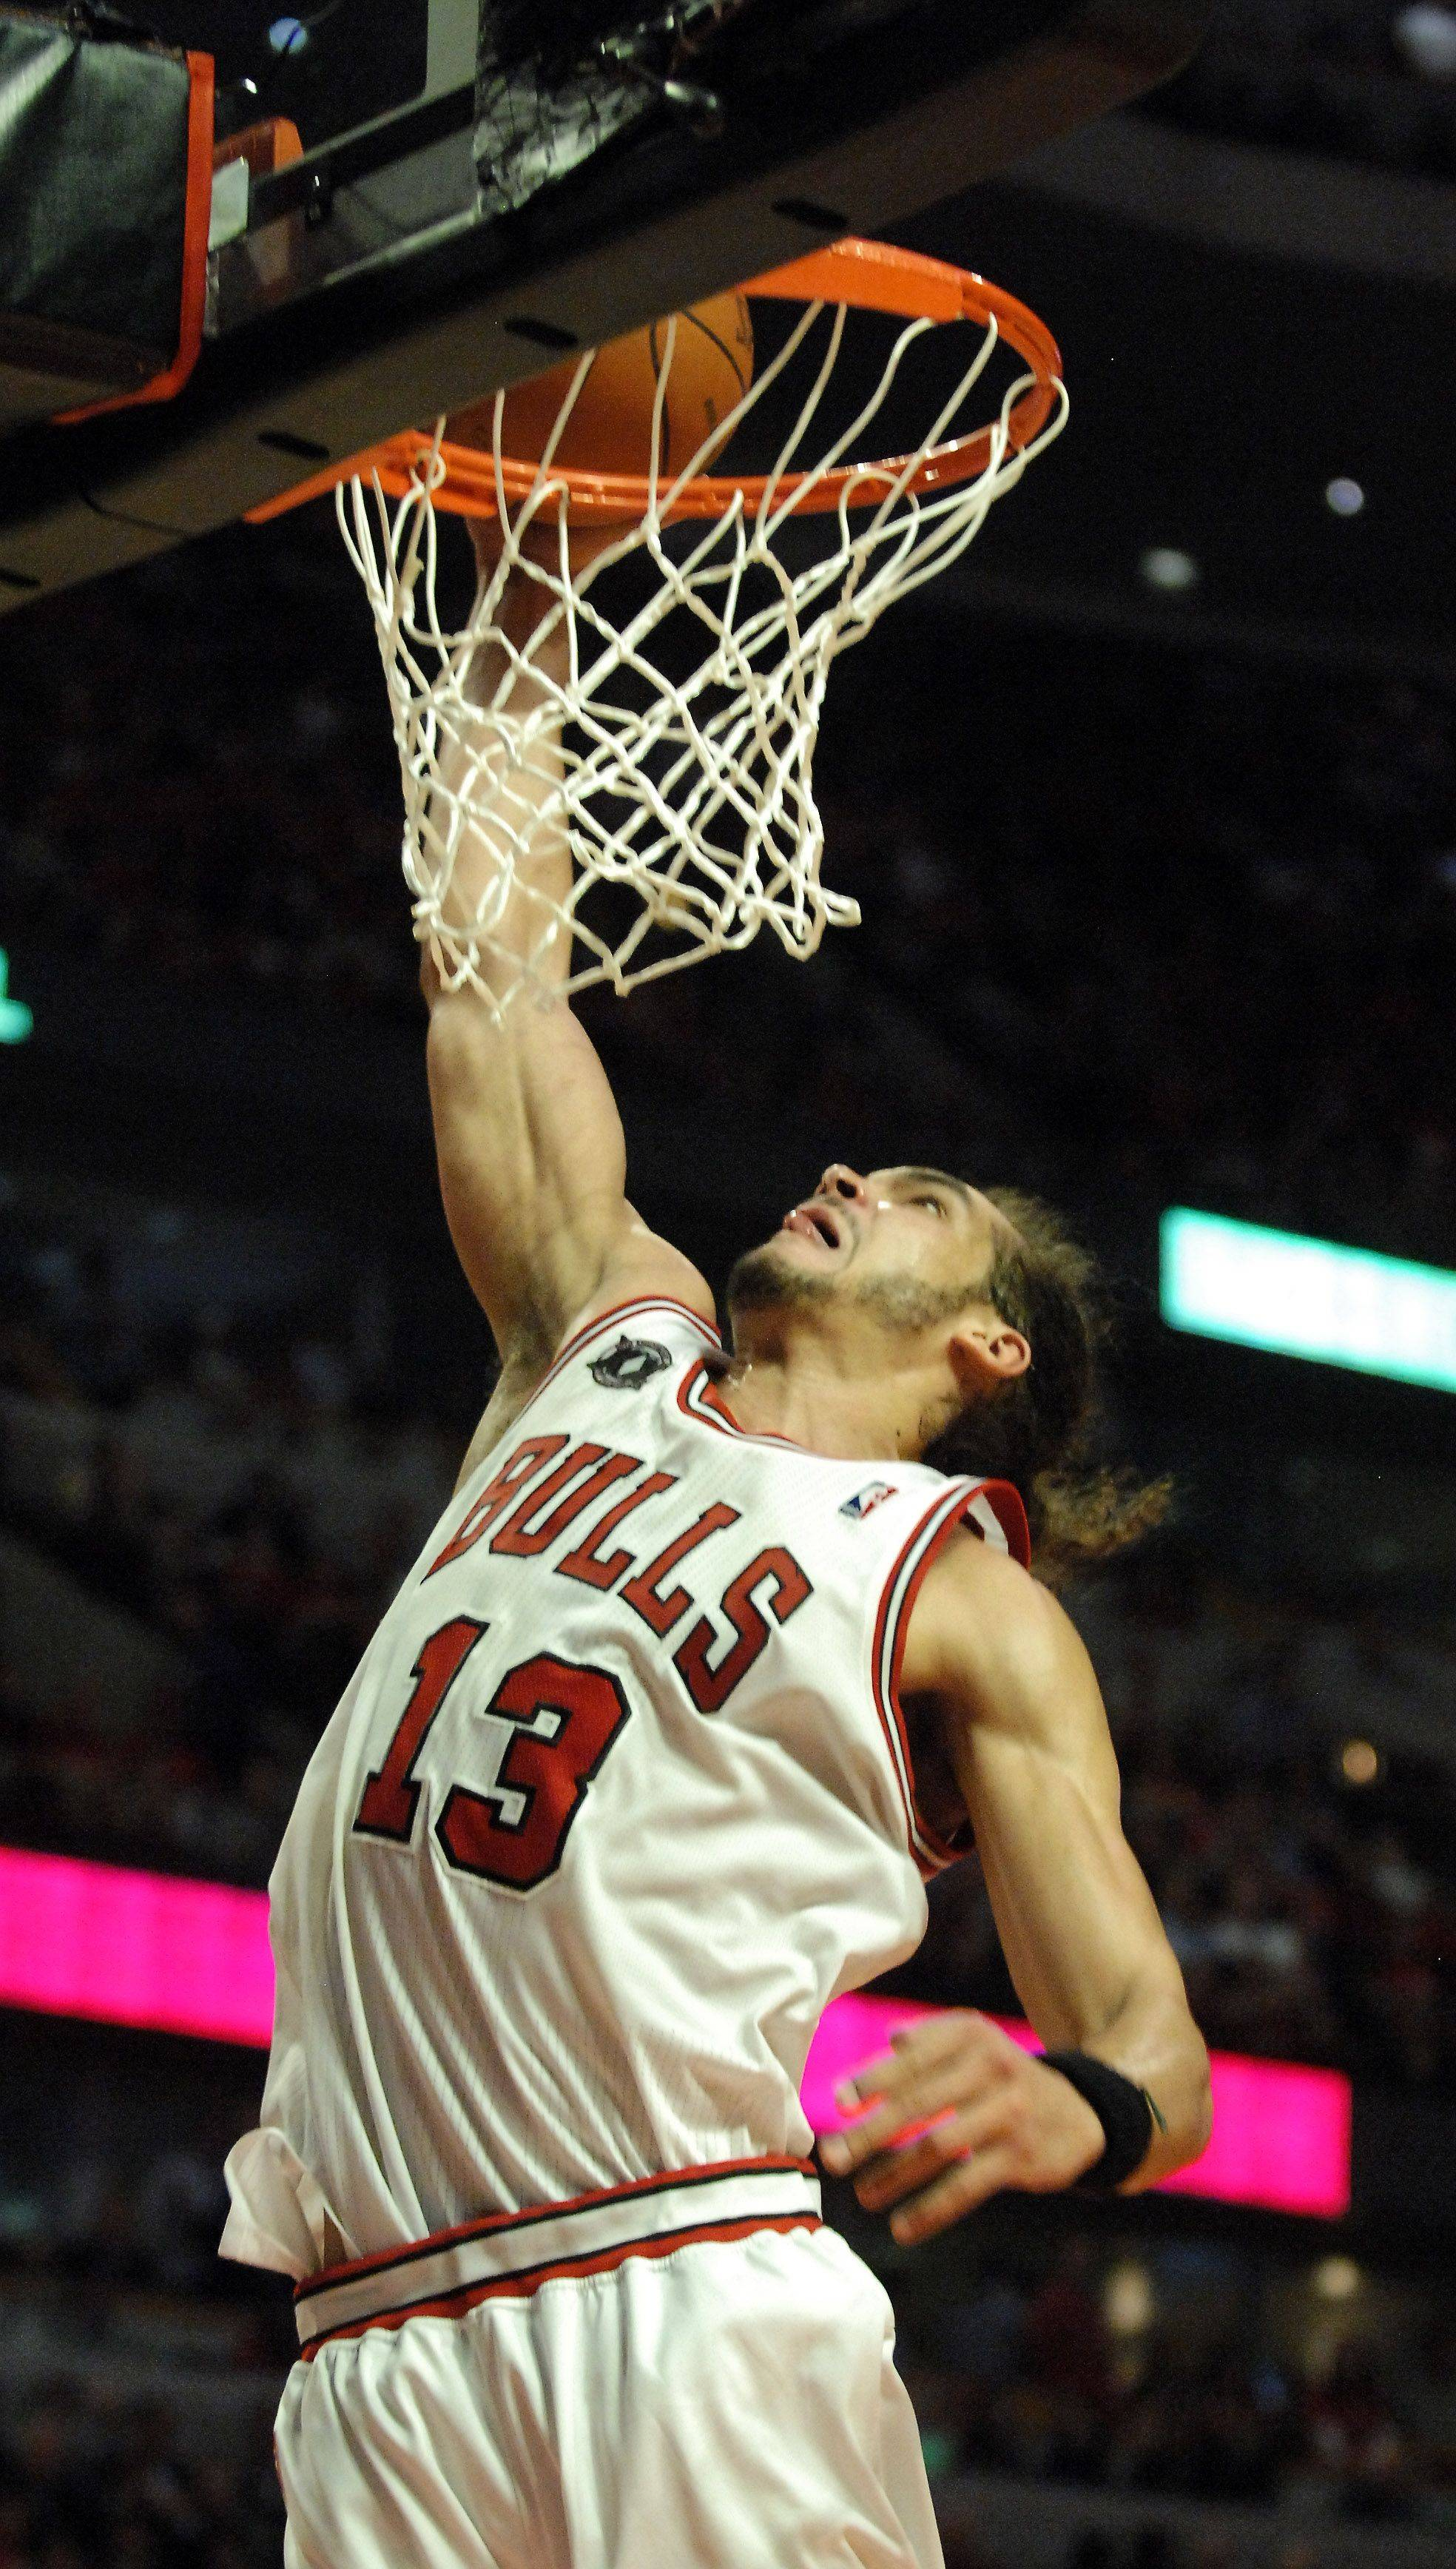 Joakim Noah dunks during game 5 in Chicago Tuesday.